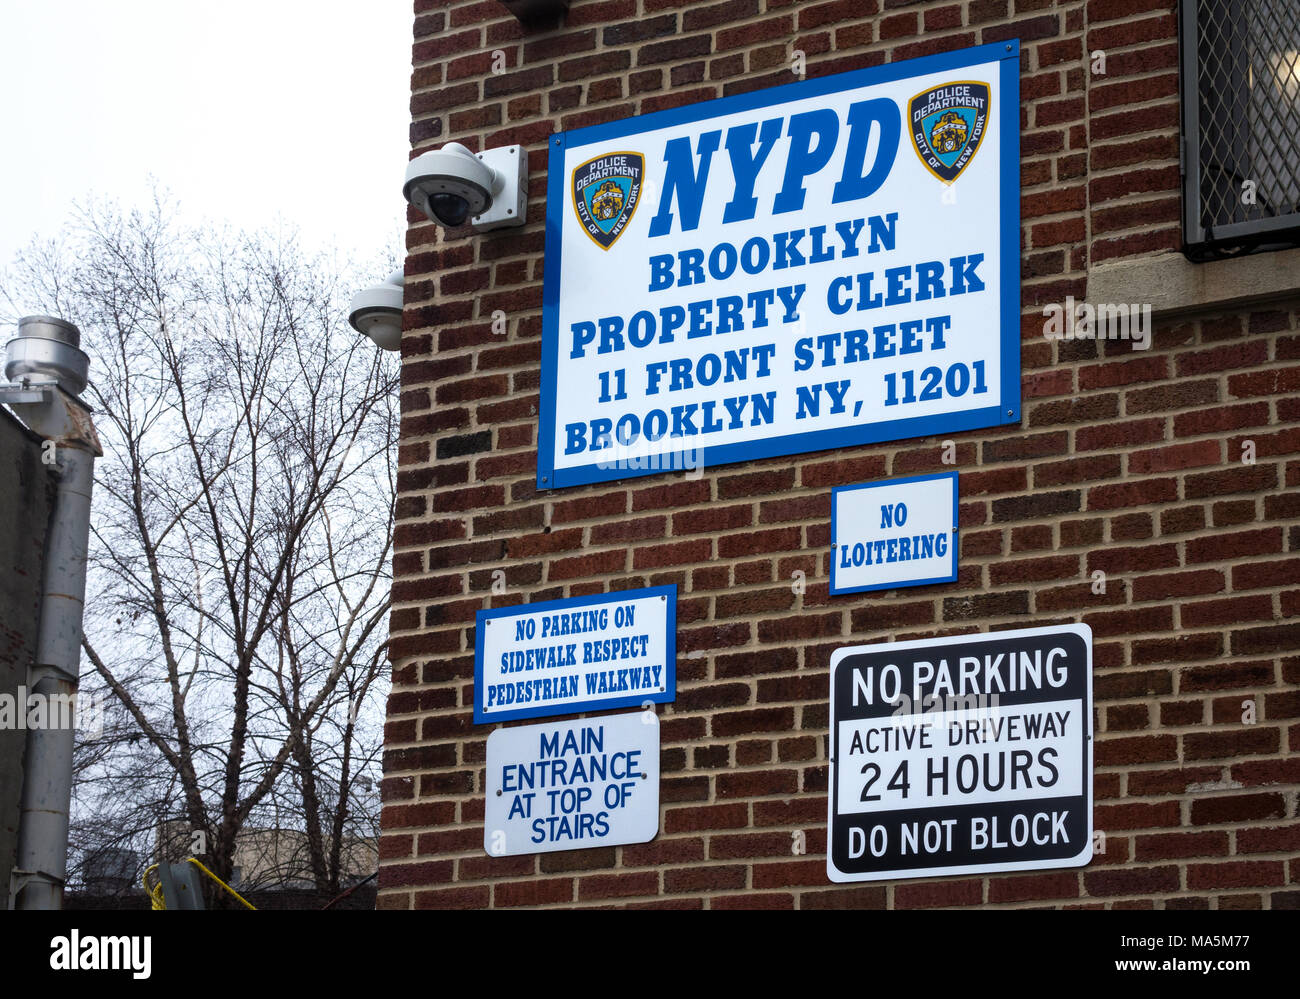 NYPD Brooklyn Property Clerk HQ building, with warning signs on an outside wall - Stock Image